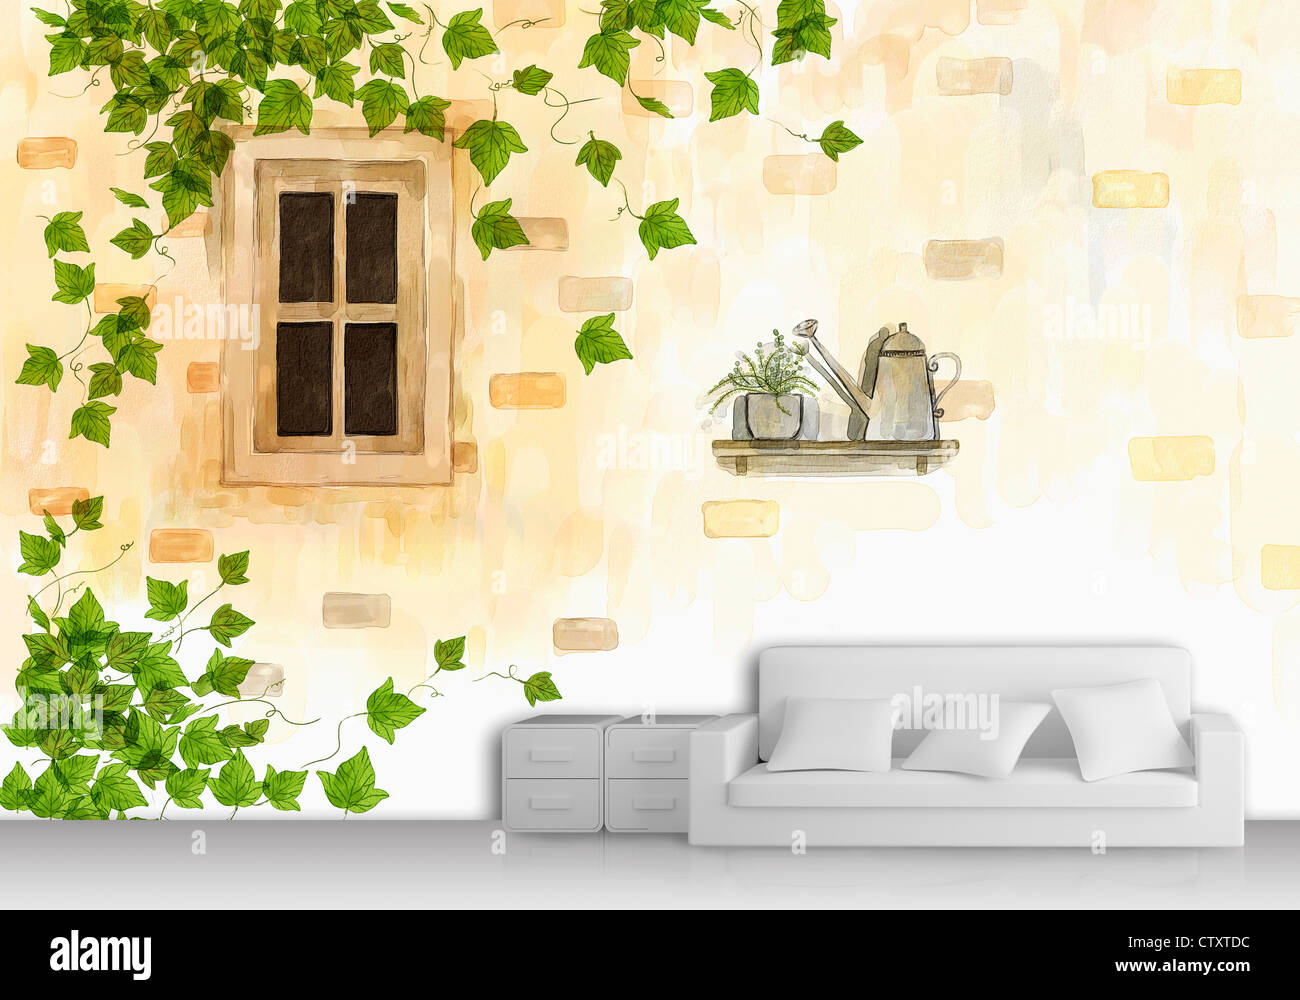 Watering Living Wall Stock Photos & Watering Living Wall Stock ...